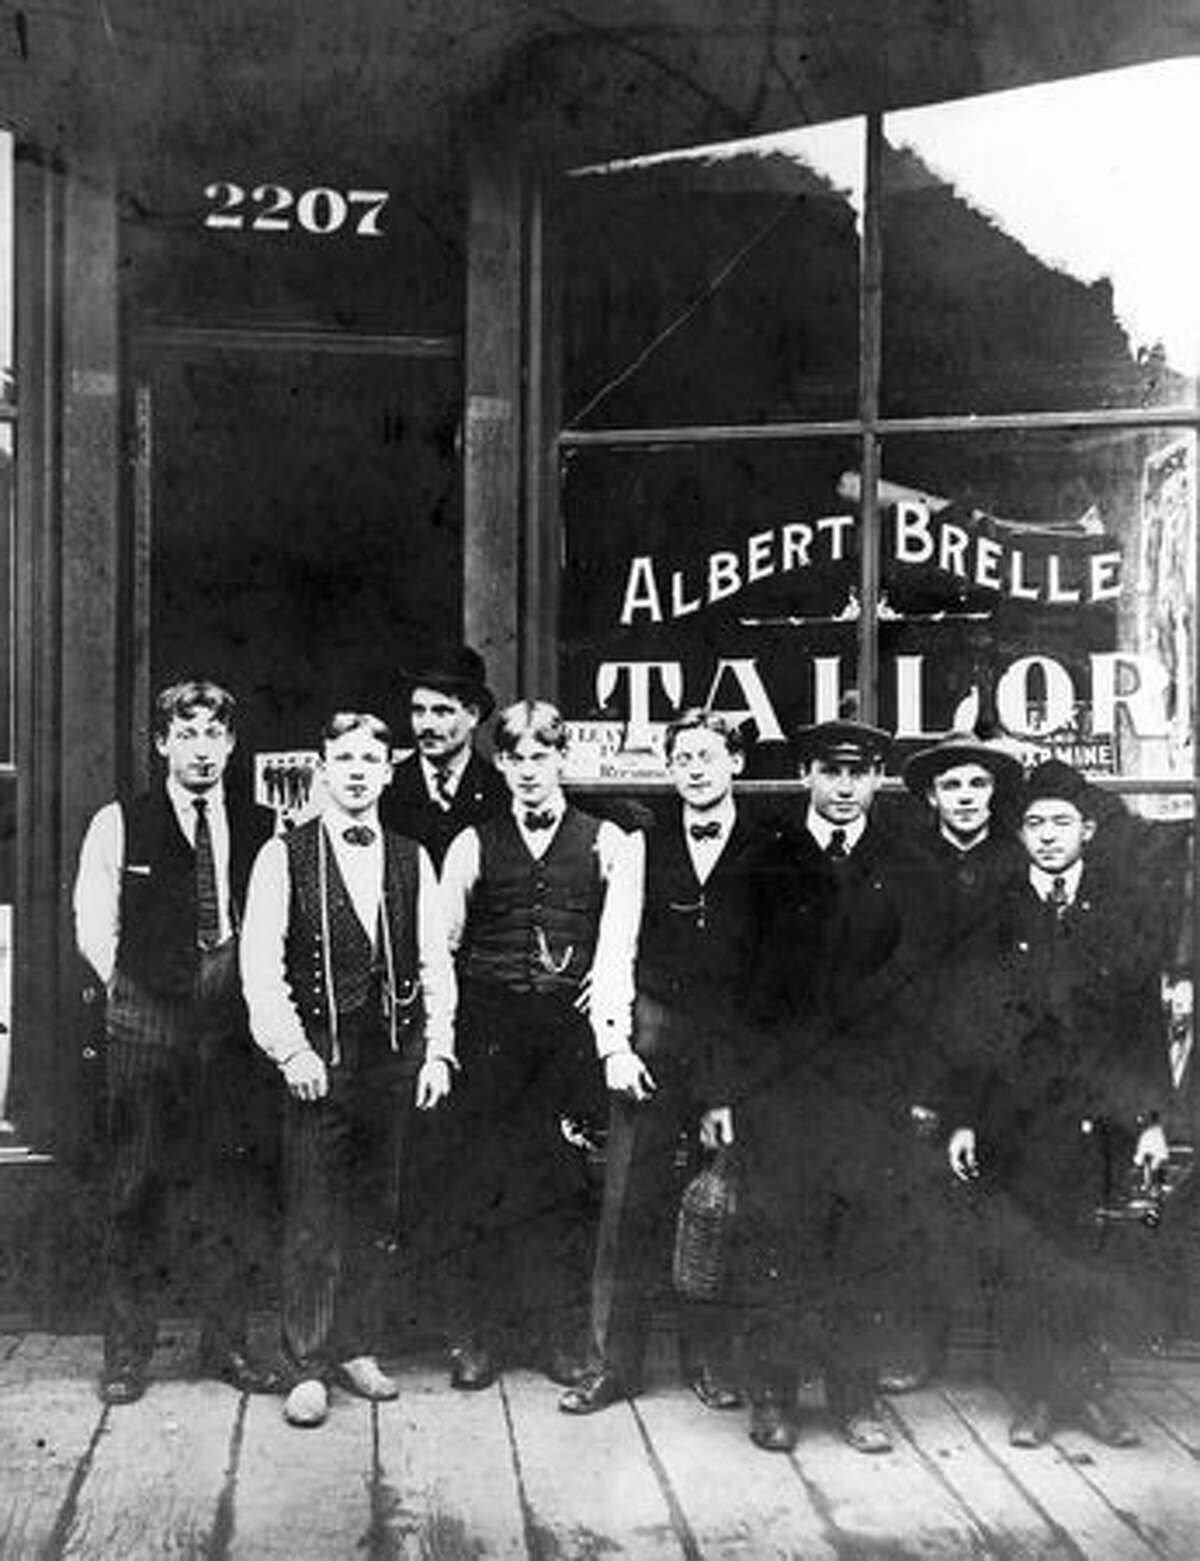 Brelle's Tailor shop at 2207 First Ave. Date unknown.